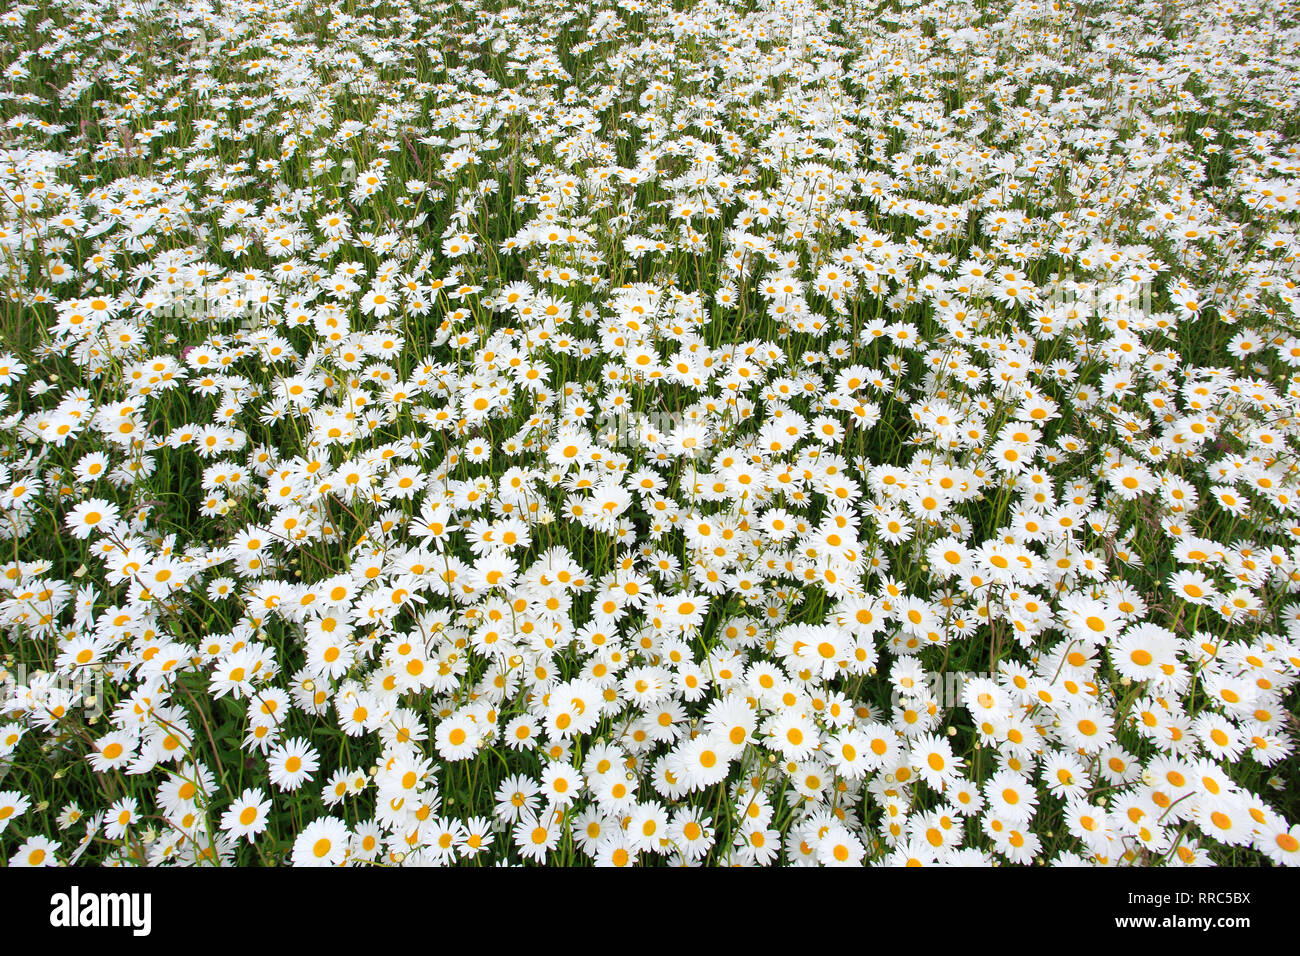 botany, marguerite, Leucanthemum vulgare, oxeye daisy, Additional-Rights-Clearance-Info-Not-Available Stock Photo